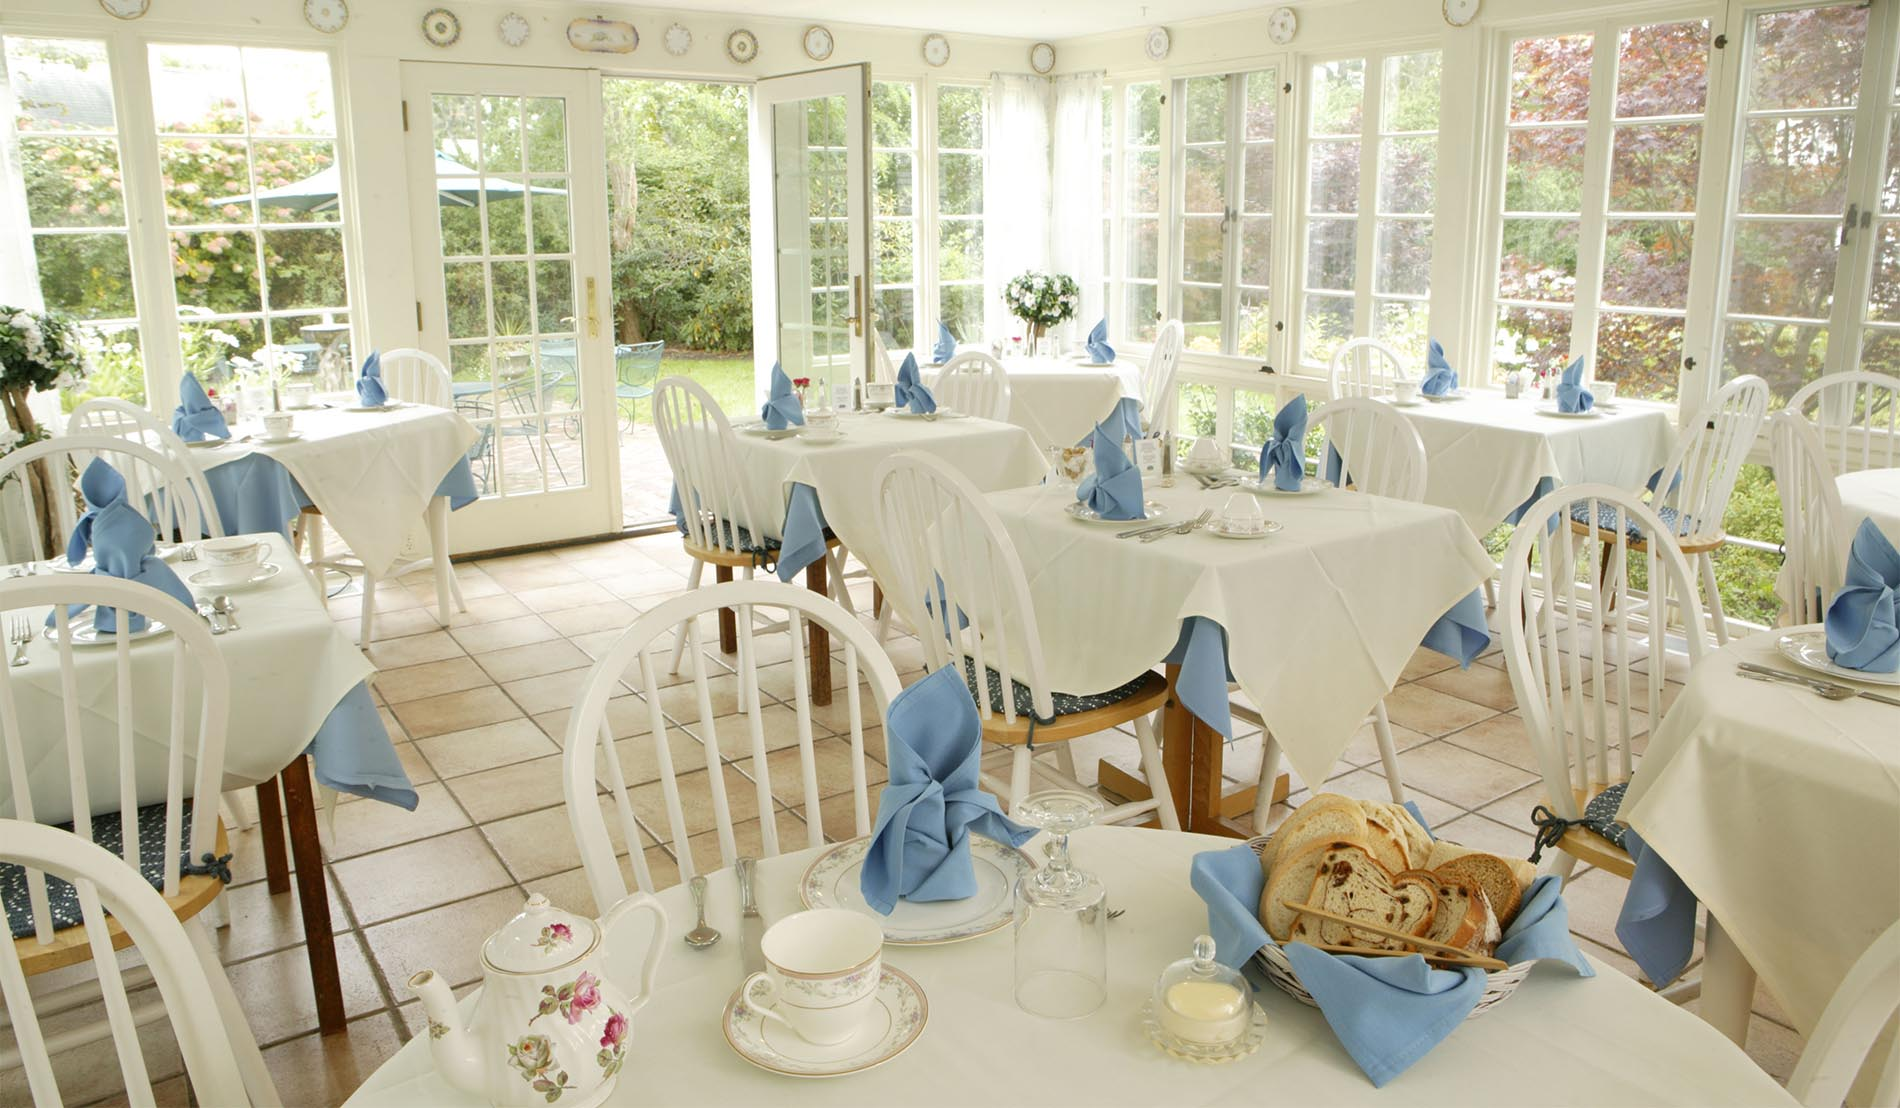 Dining room showing windows on three sides with tables with white table linens and blue napkins